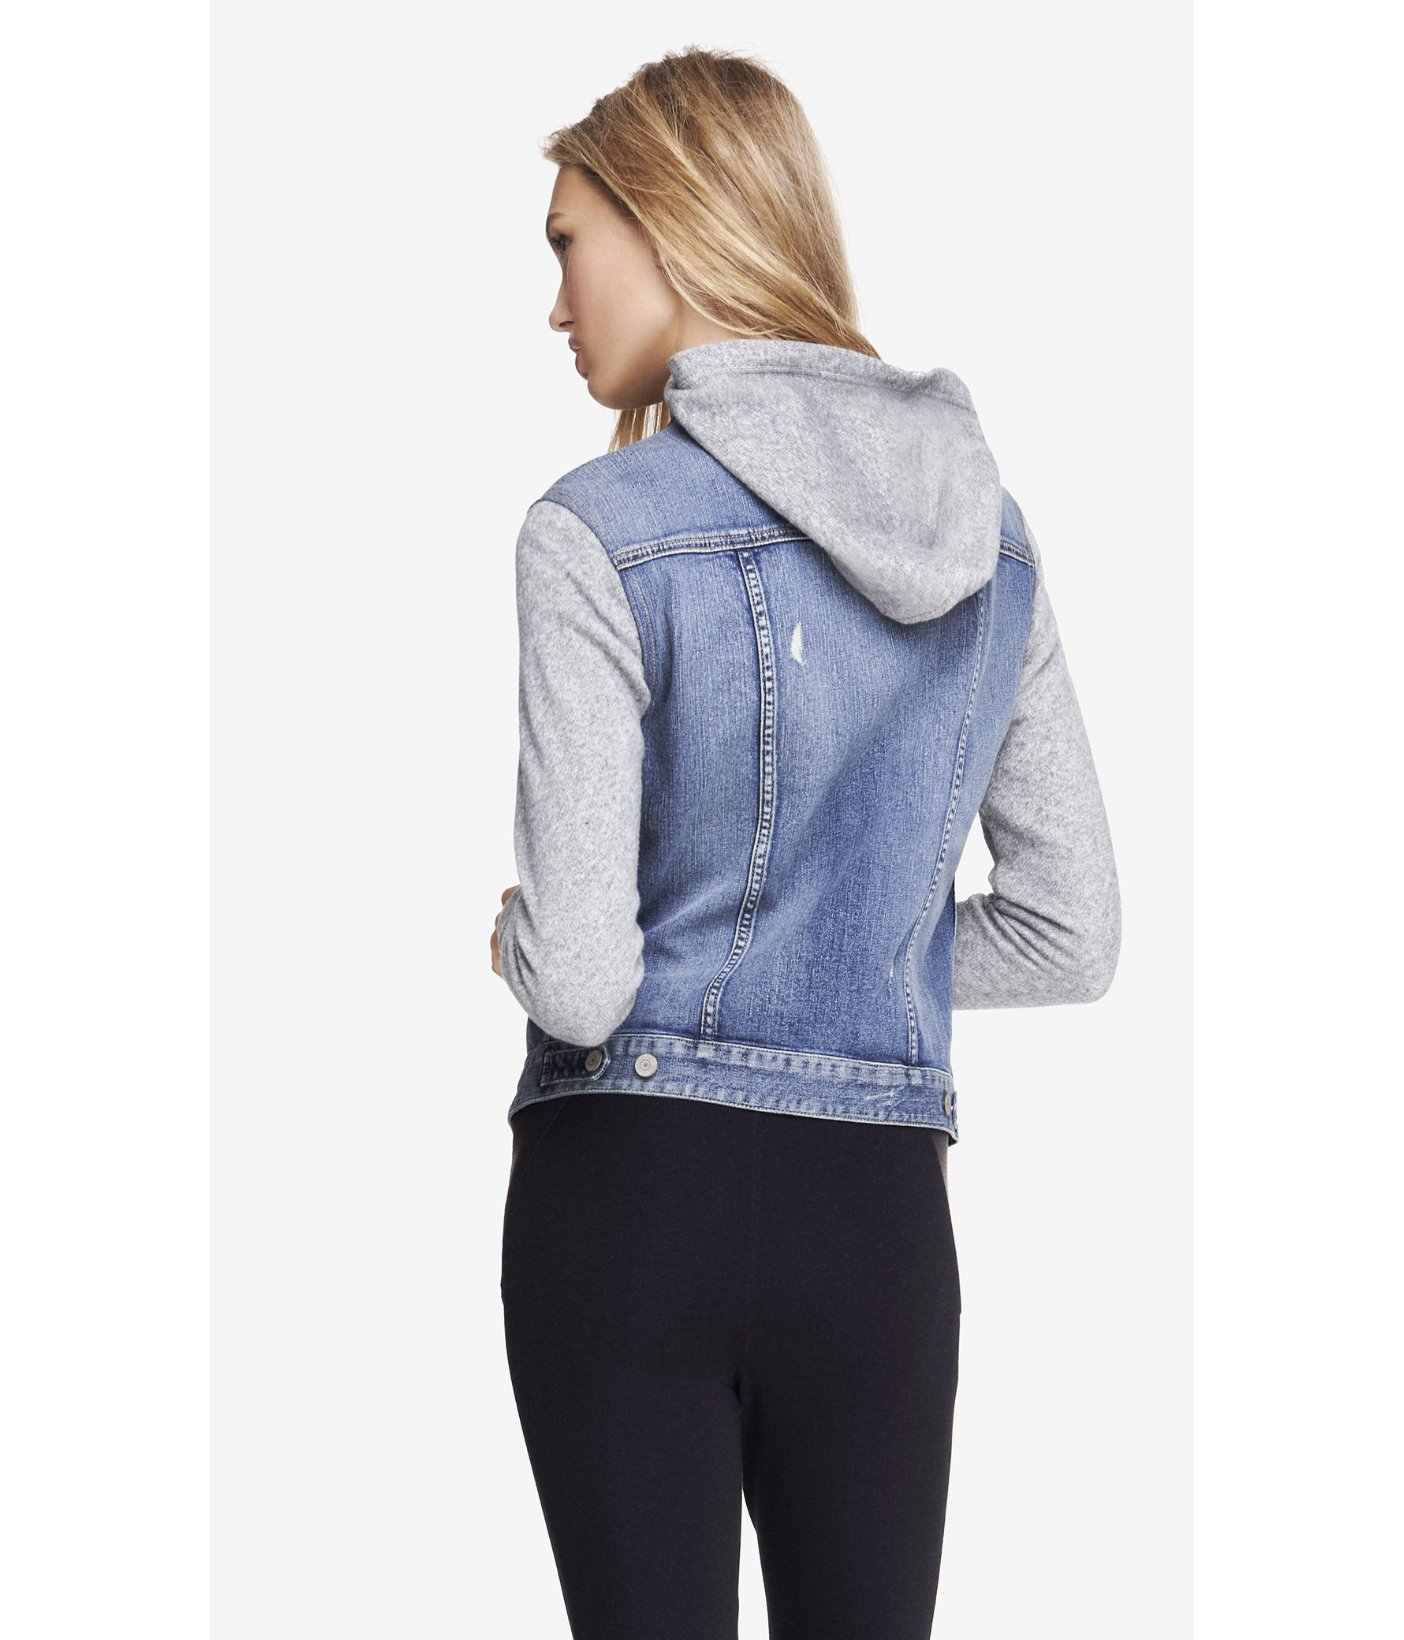 Jean Jacket Express | Jeans To